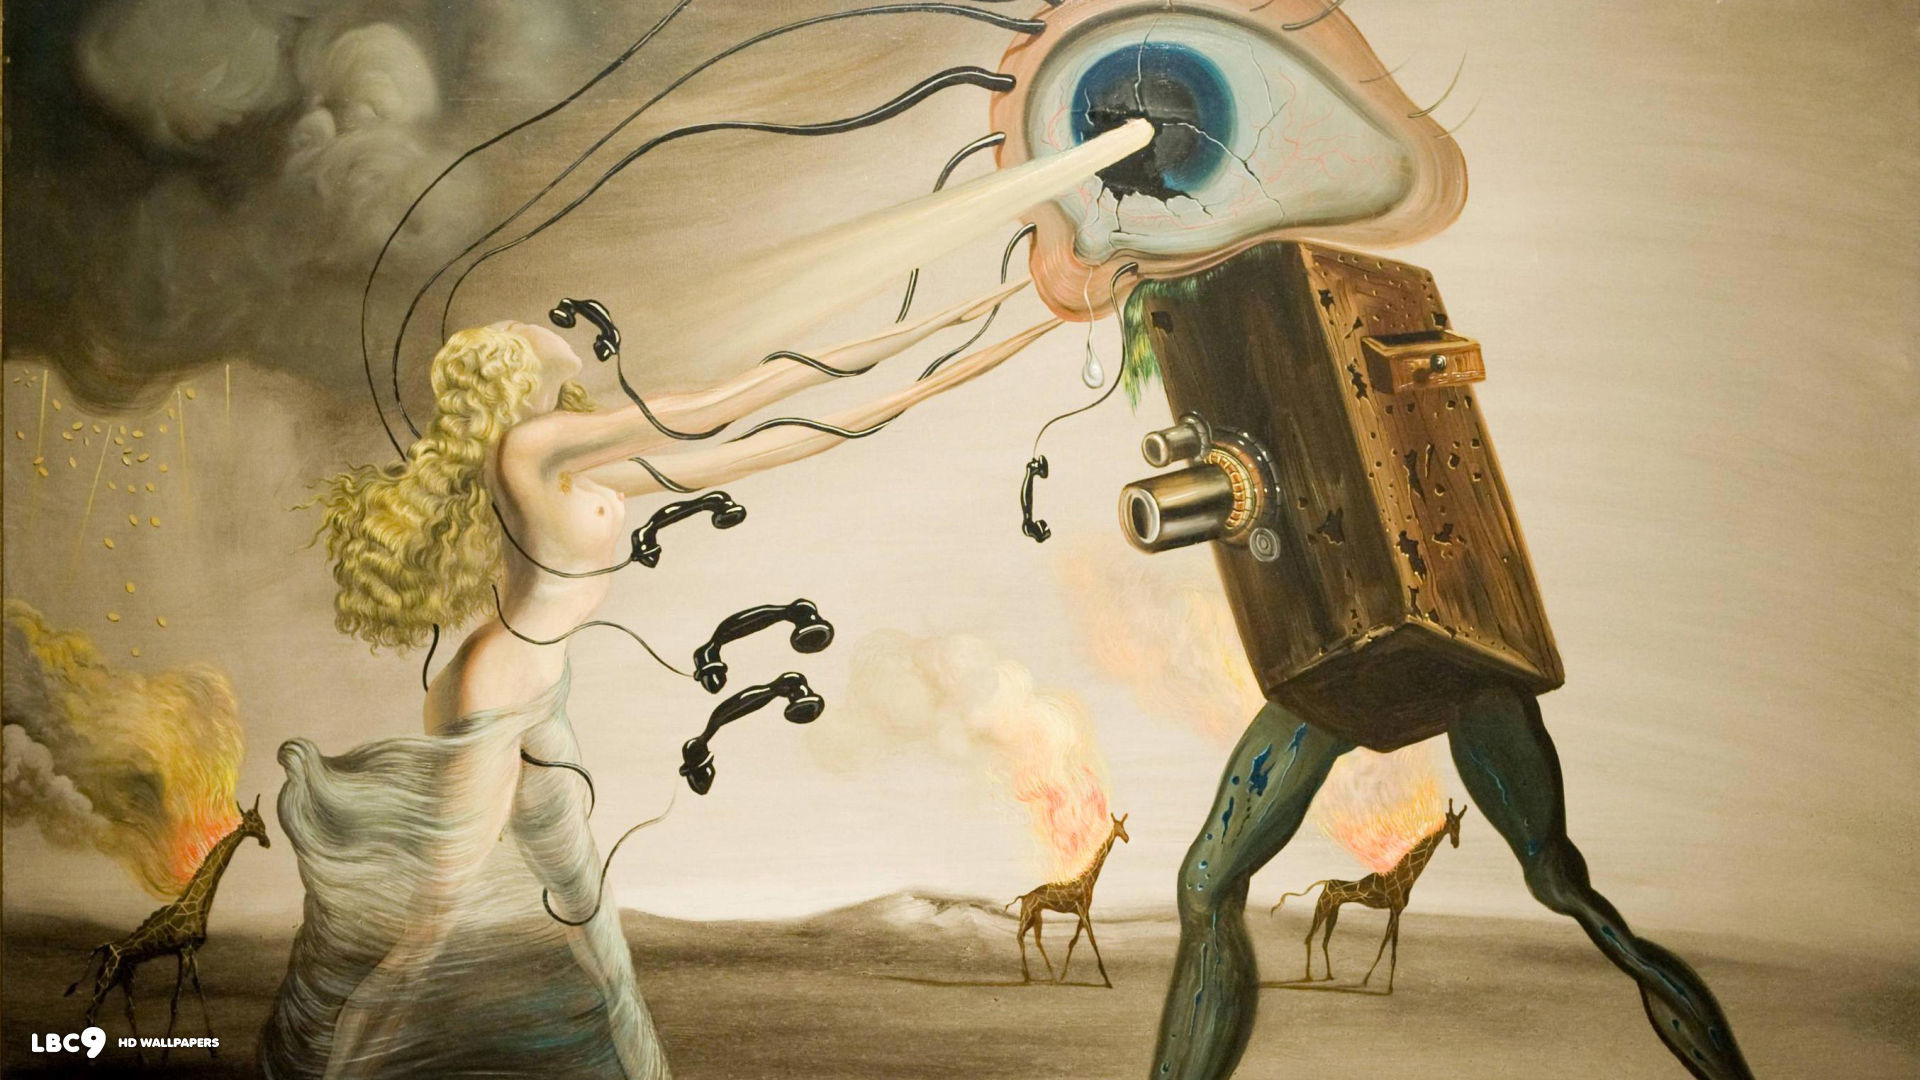 1920x1080 salvador dali wallpaper 438 paintings hd backgrounds